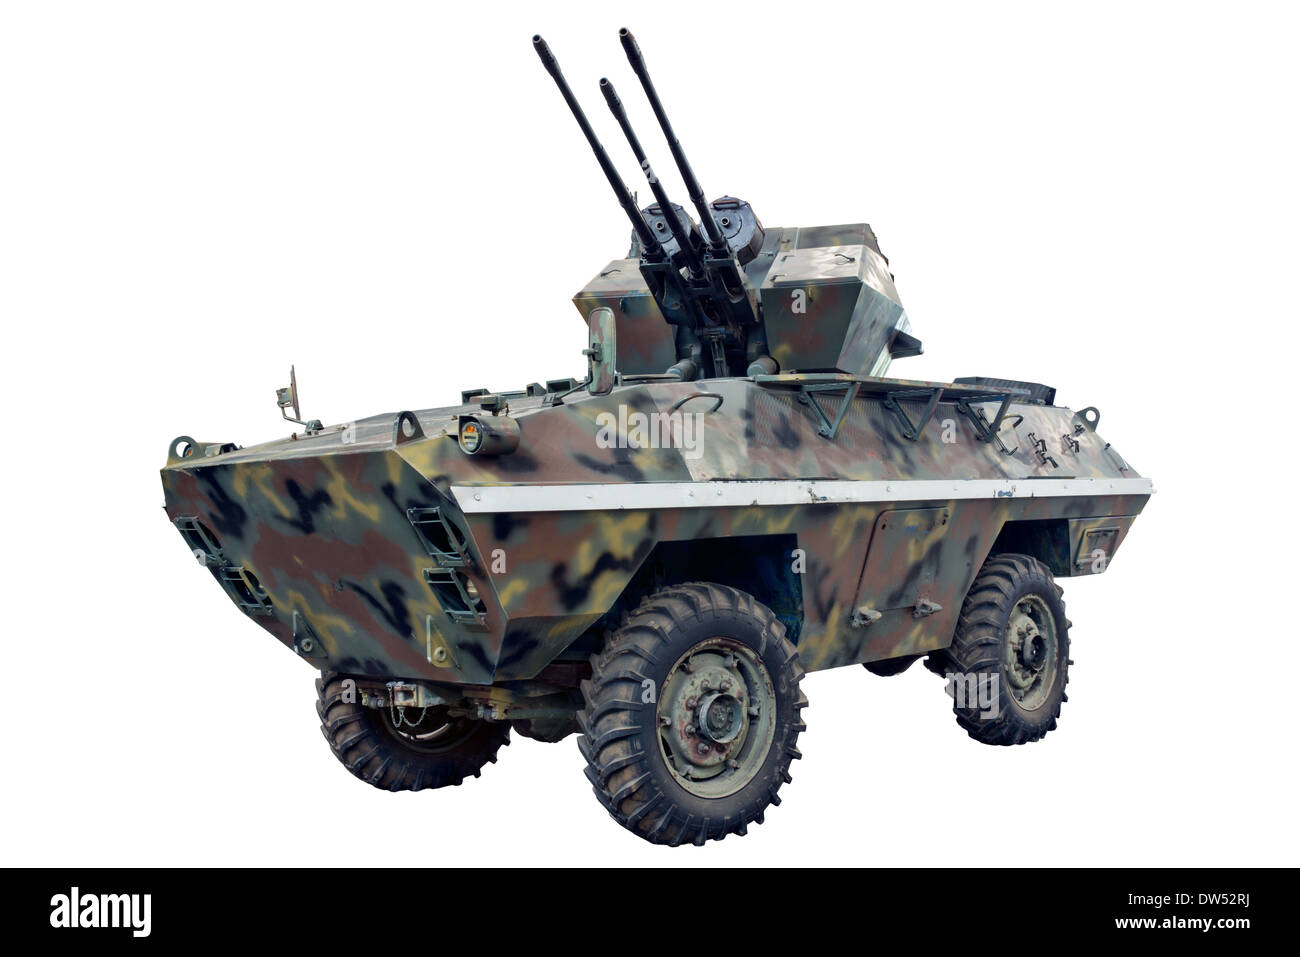 A cut out of a Yugoslavian BOV 3 mobile self propelled anti aircraft system used by forces of the Warsaw pact & still in service - Stock Image